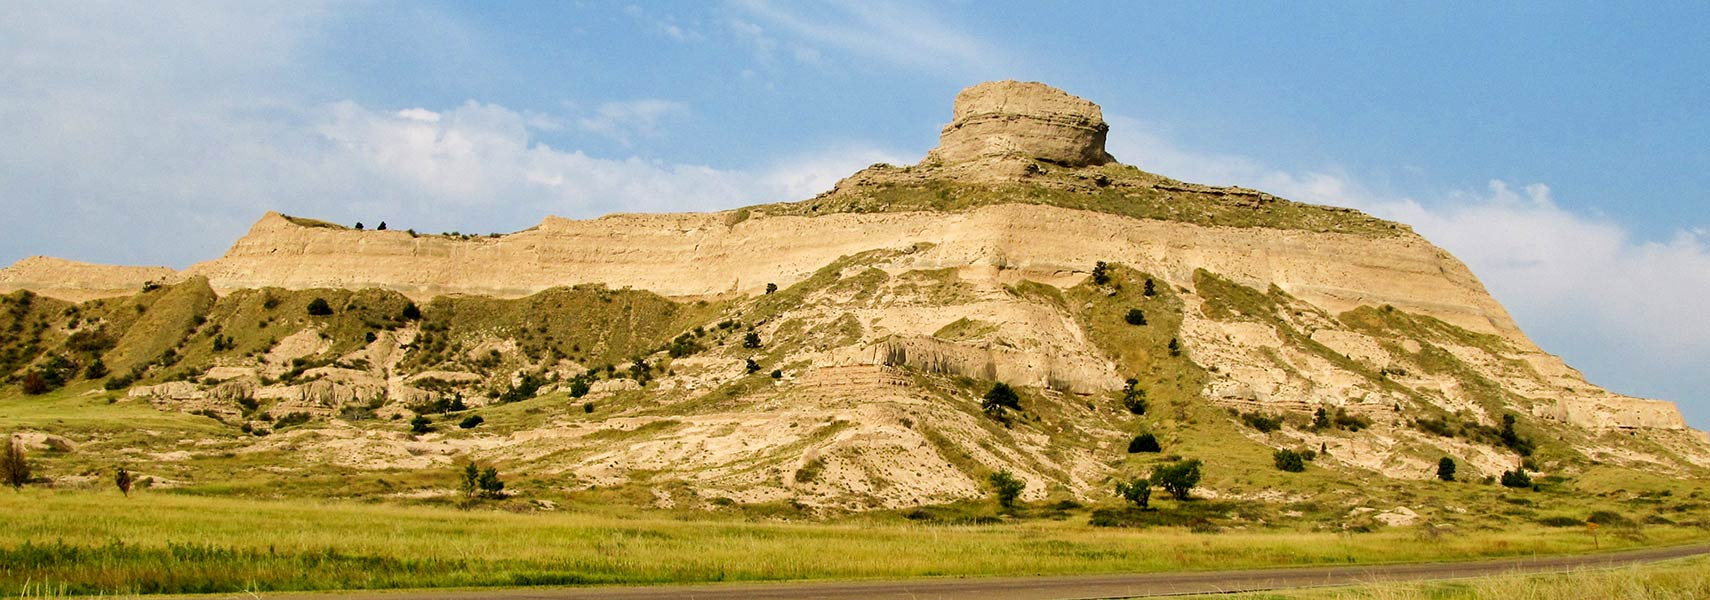 Scotts Bluff National Monument in Scotts Bluff County in Nebraska